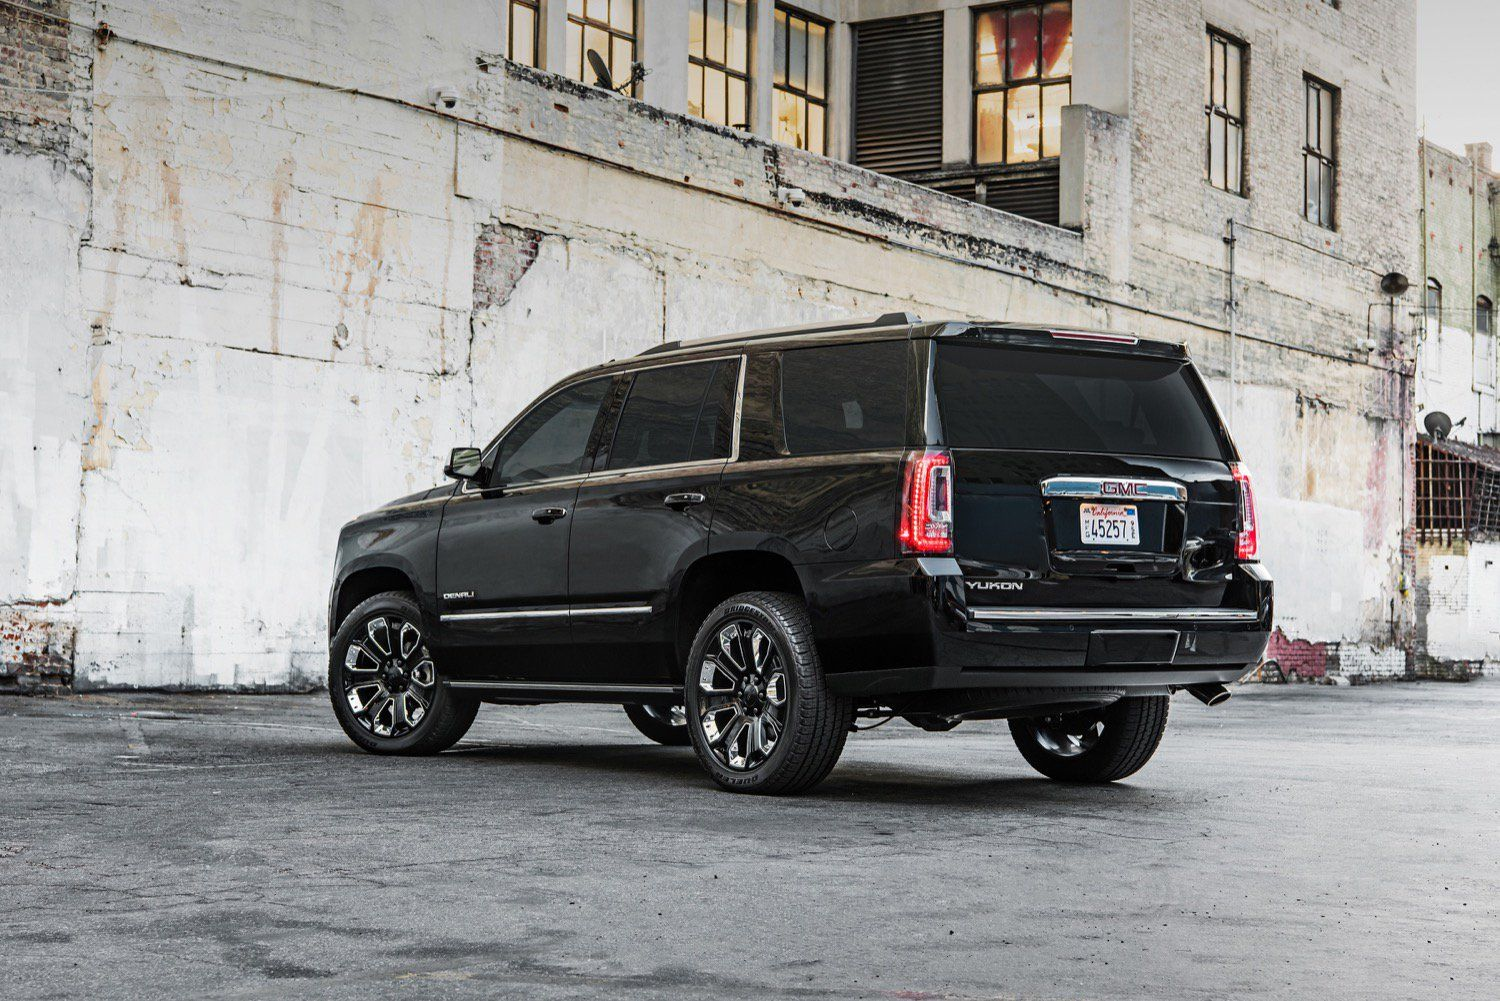 2018 Gmc Yukon Denali Ultimate Black Edition Continues The All Black Everything Trend Gmc Yukon Denali 2018 Gmc Yukon Gmc Trucks